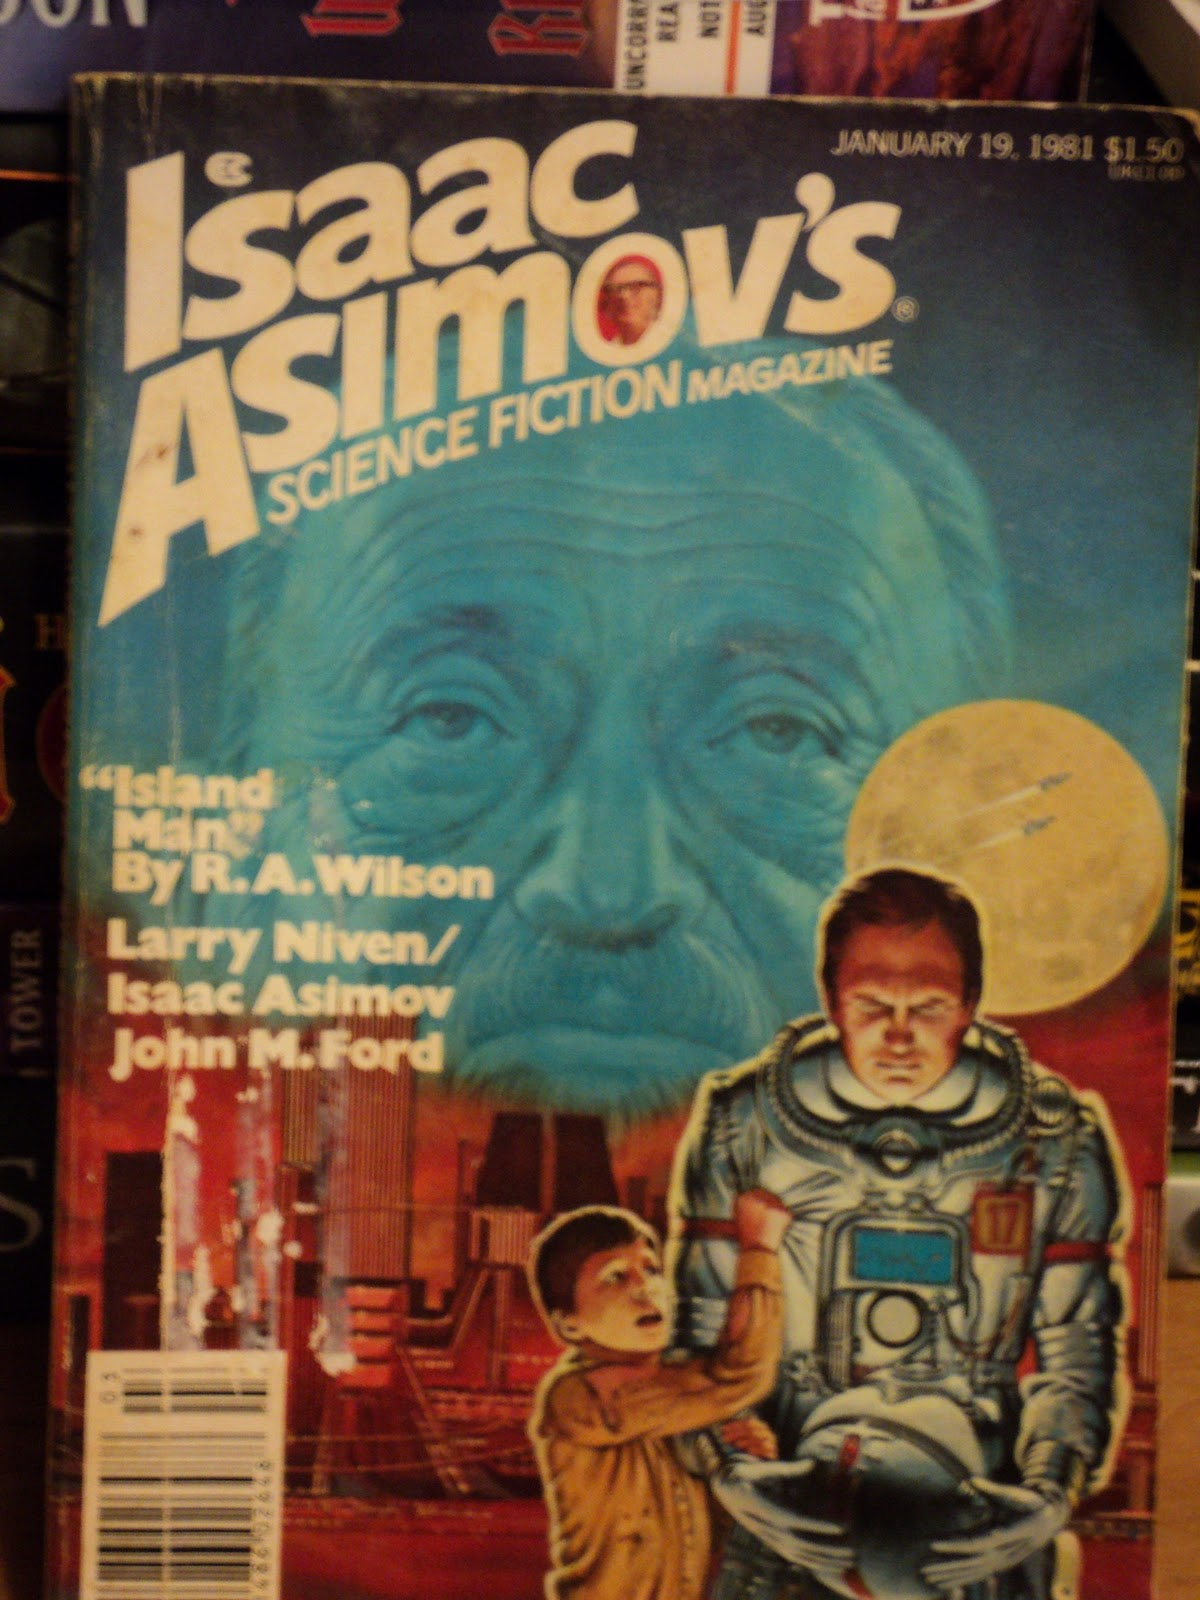 A Preview Of Old Sf Magazine Cover Art And Two 80s Era Covers Vaguely Borgesian